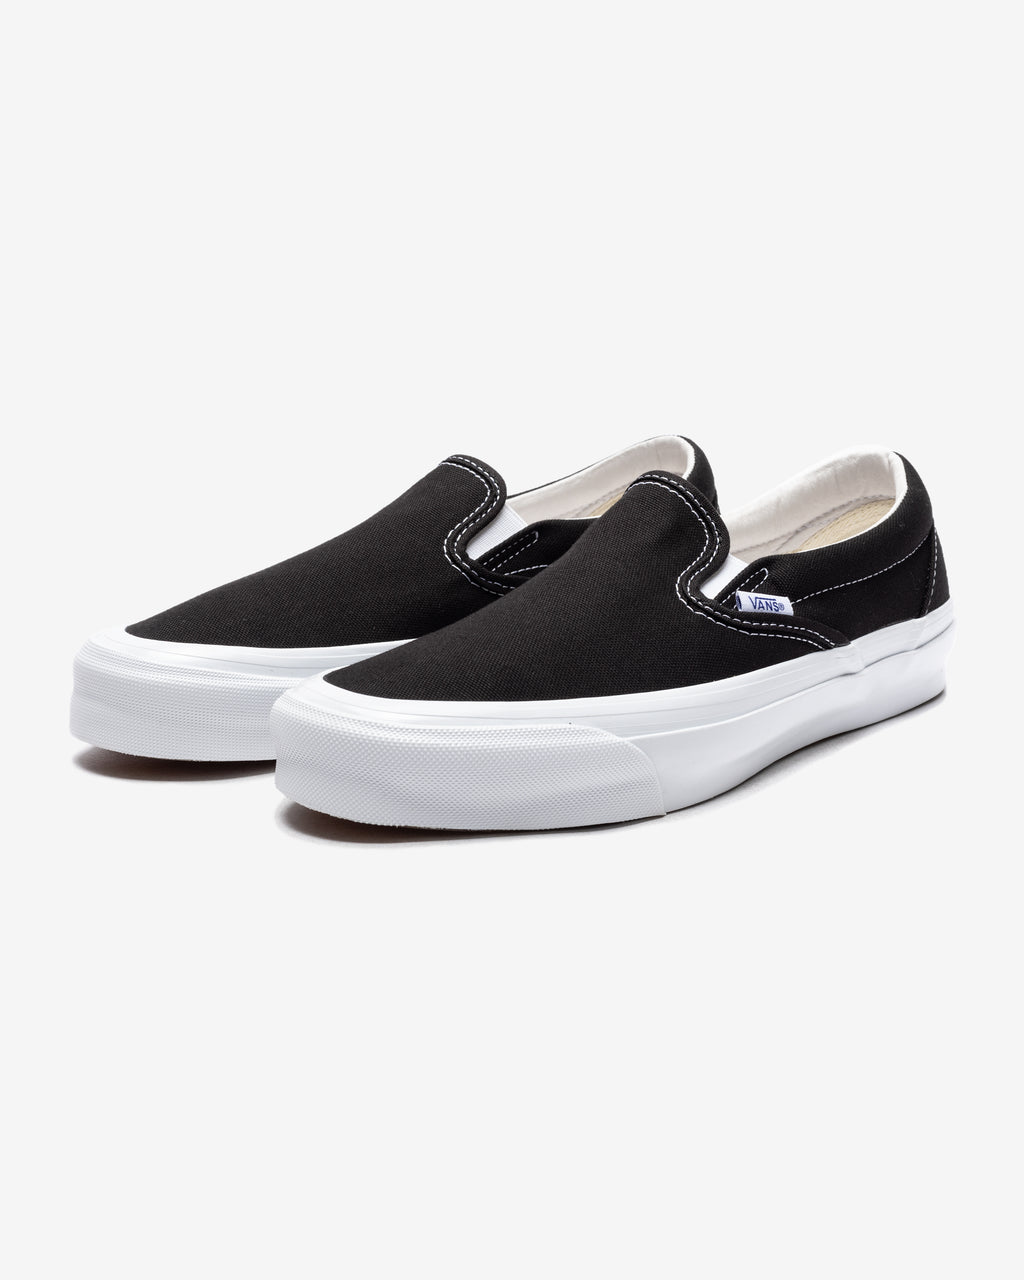 OG CLASSIC SLIP-ON (CANVAS) - BLACK/ TRUEWHITE